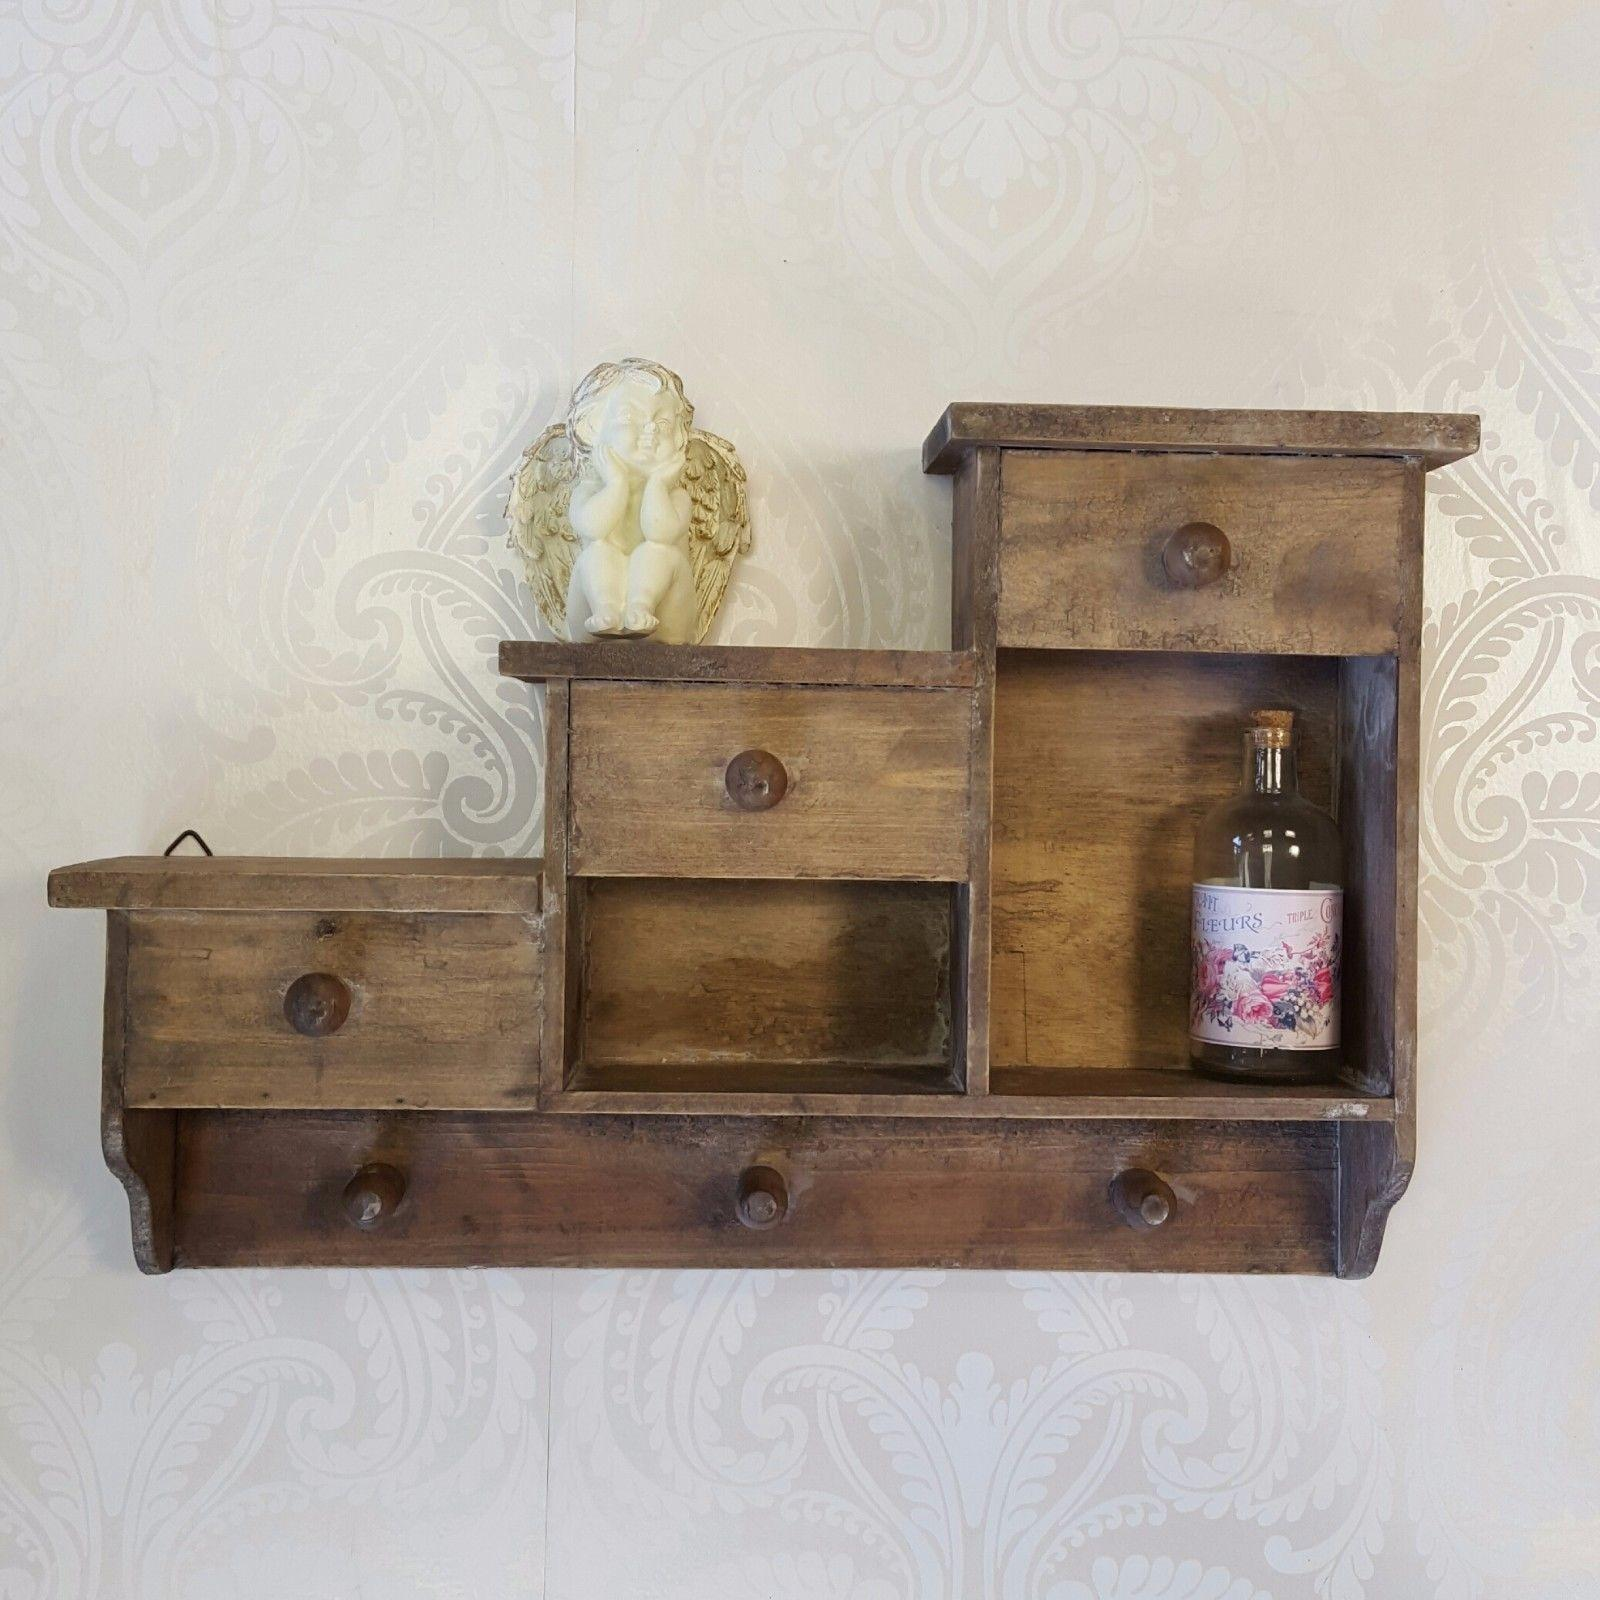 Wall Hanging Shelf Display Cabinet Unit Shabby Chic